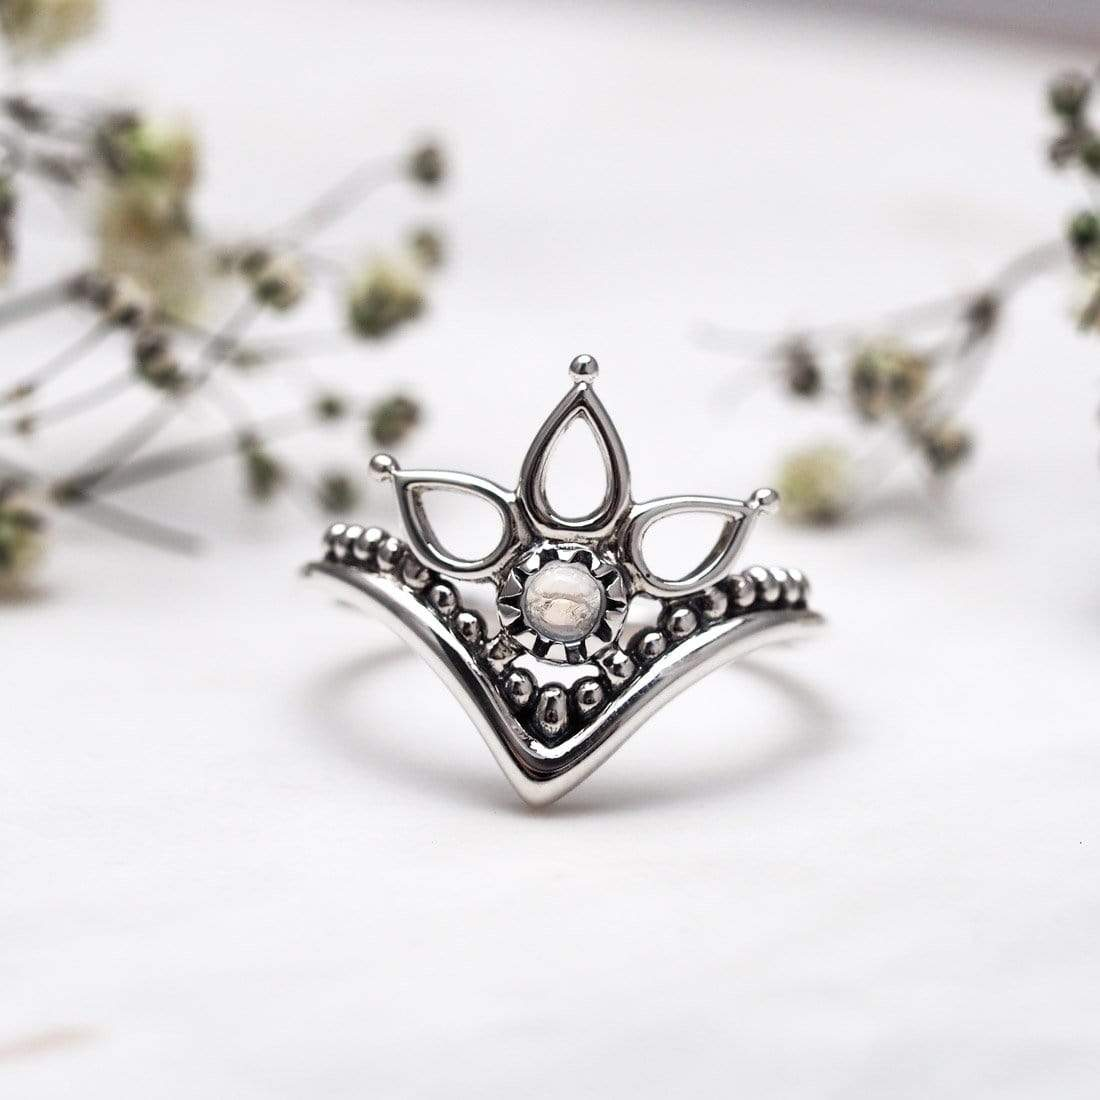 Midsummer Star Ring Interstellar Teardrops Rainbow Moonstone Ring